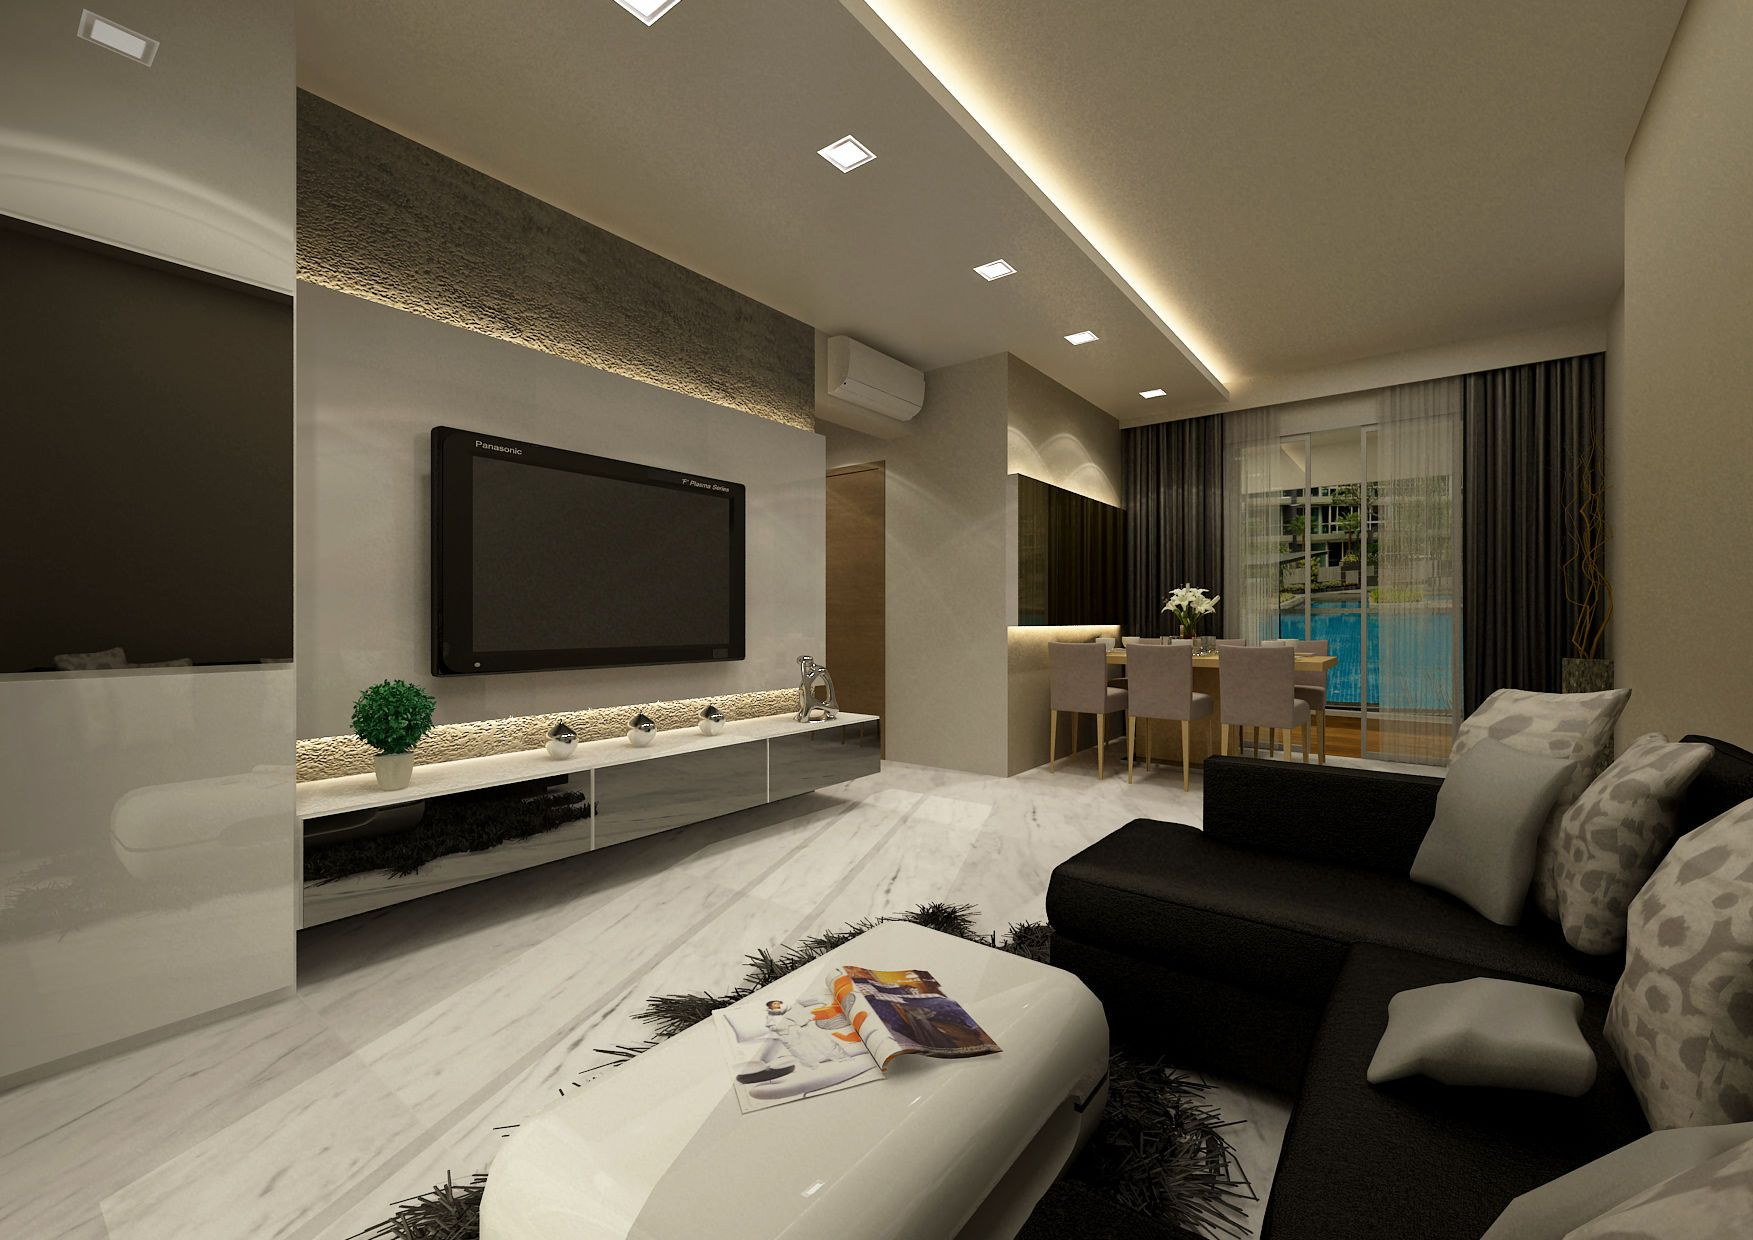 Designs Of Living Room New Graphic Executive Condominium Interior Design  Renovation Inspiration